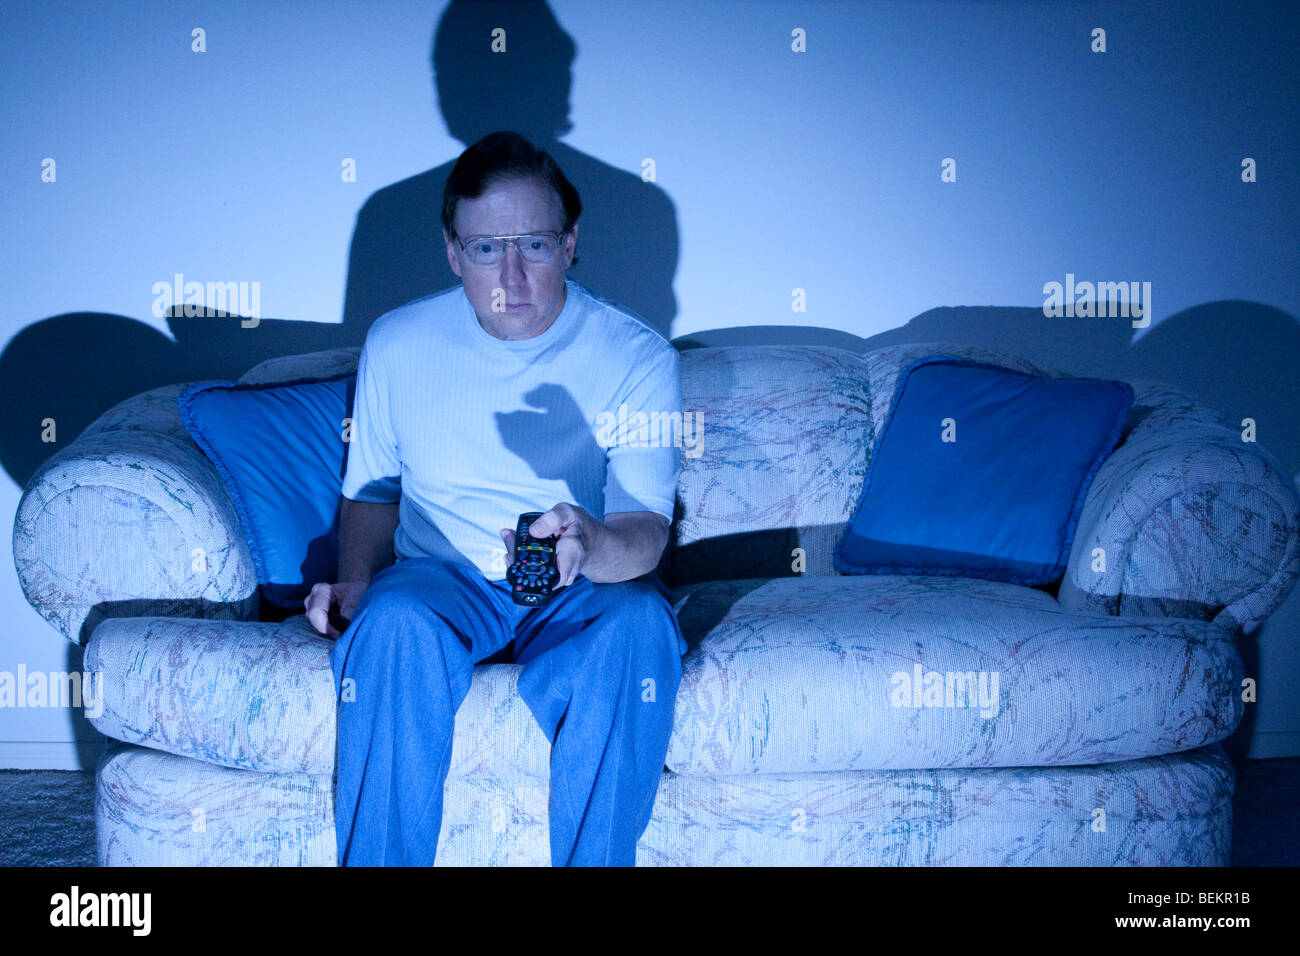 Mature man in shirt and blue jeans wearing glasses sitting on sofa in the dark with tv remote lit by tv screen - Stock Image